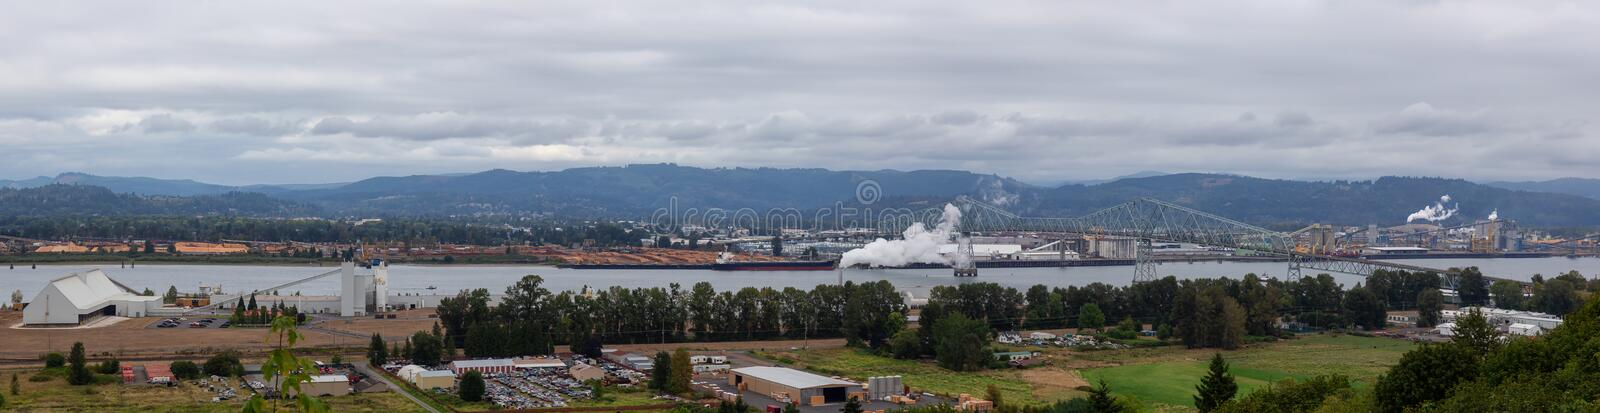 Longview, Washington, United States of America. Aerial Panoramic View of Port, Industrial Sites and Lewis and Clark Bridge over Columbia River stock photo